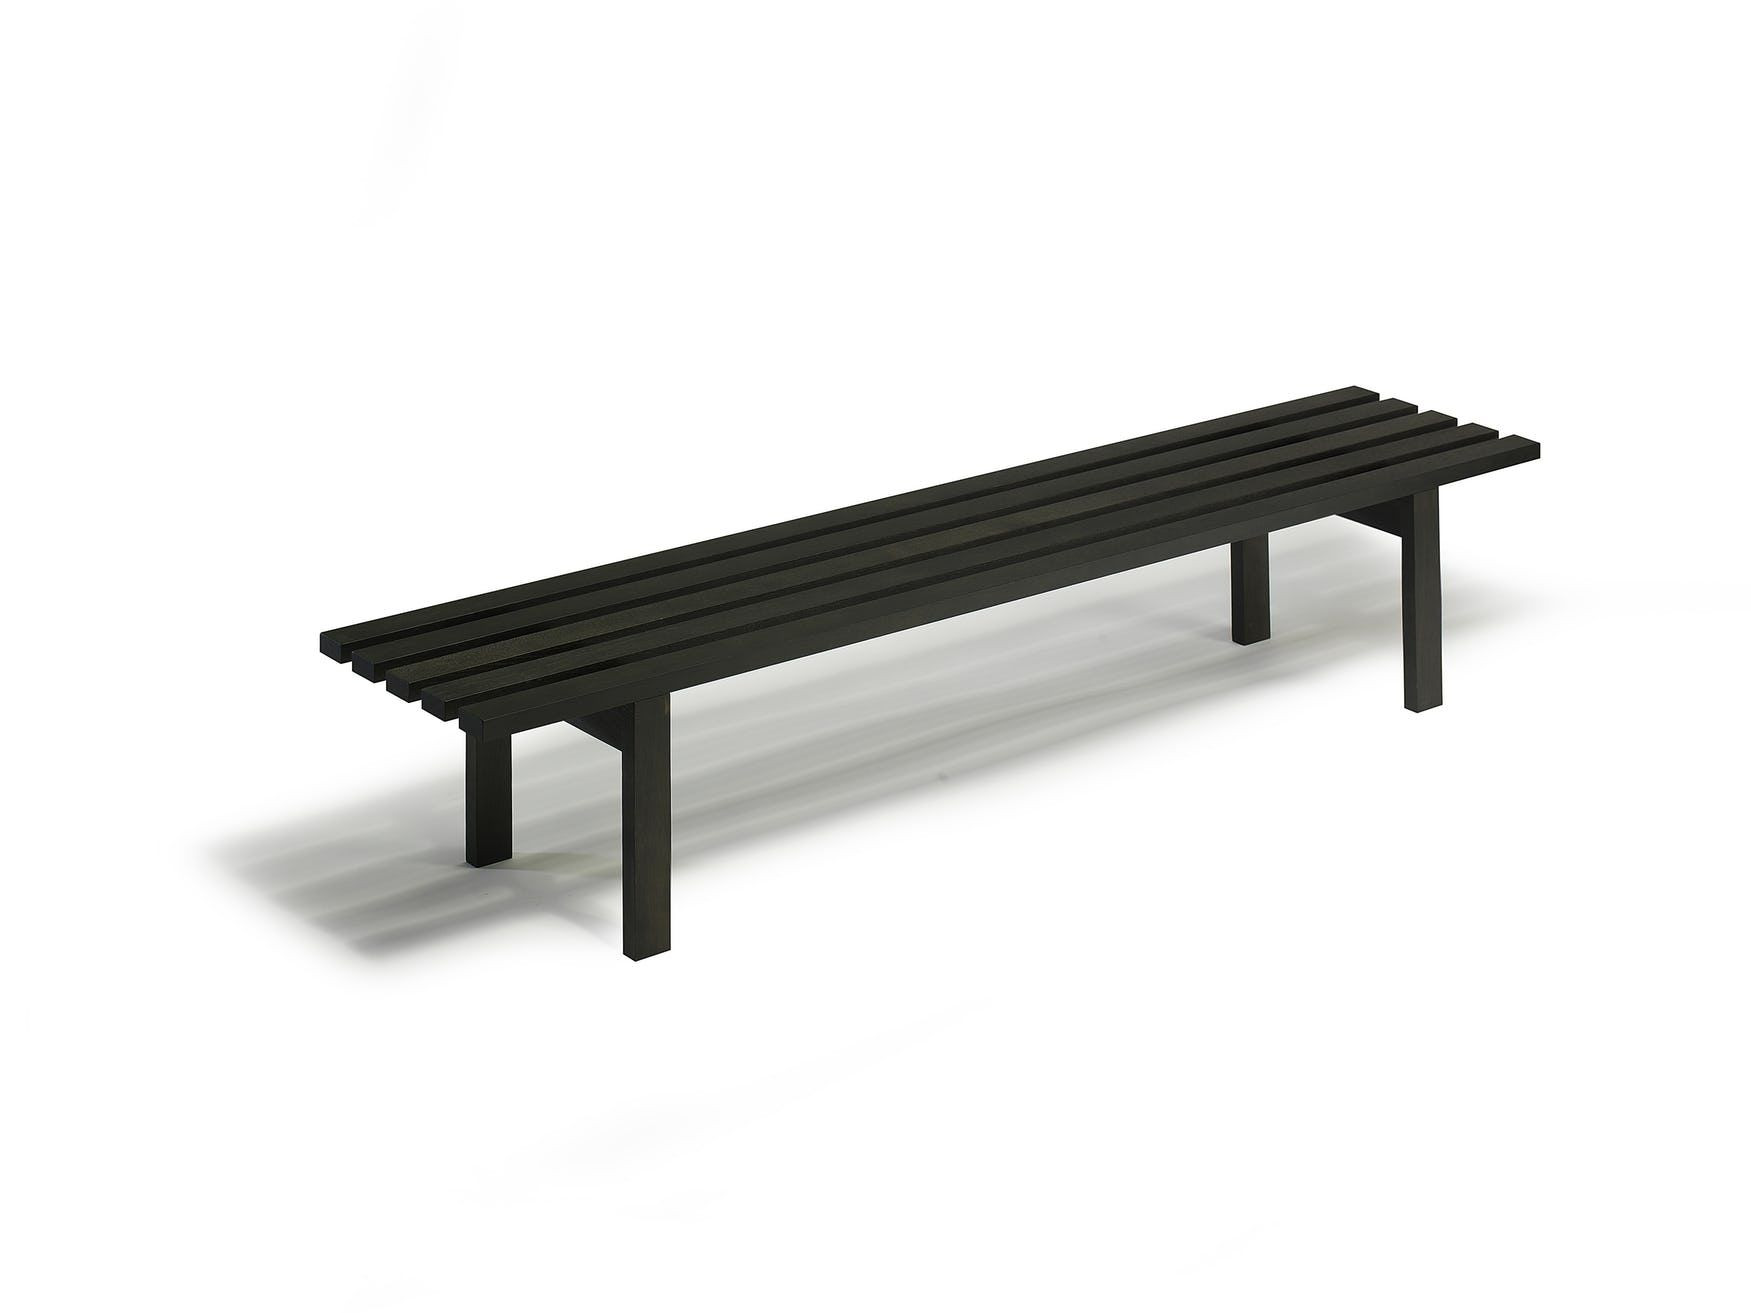 Bz Bench By Spectrum Furniture Now Available At Haute Living